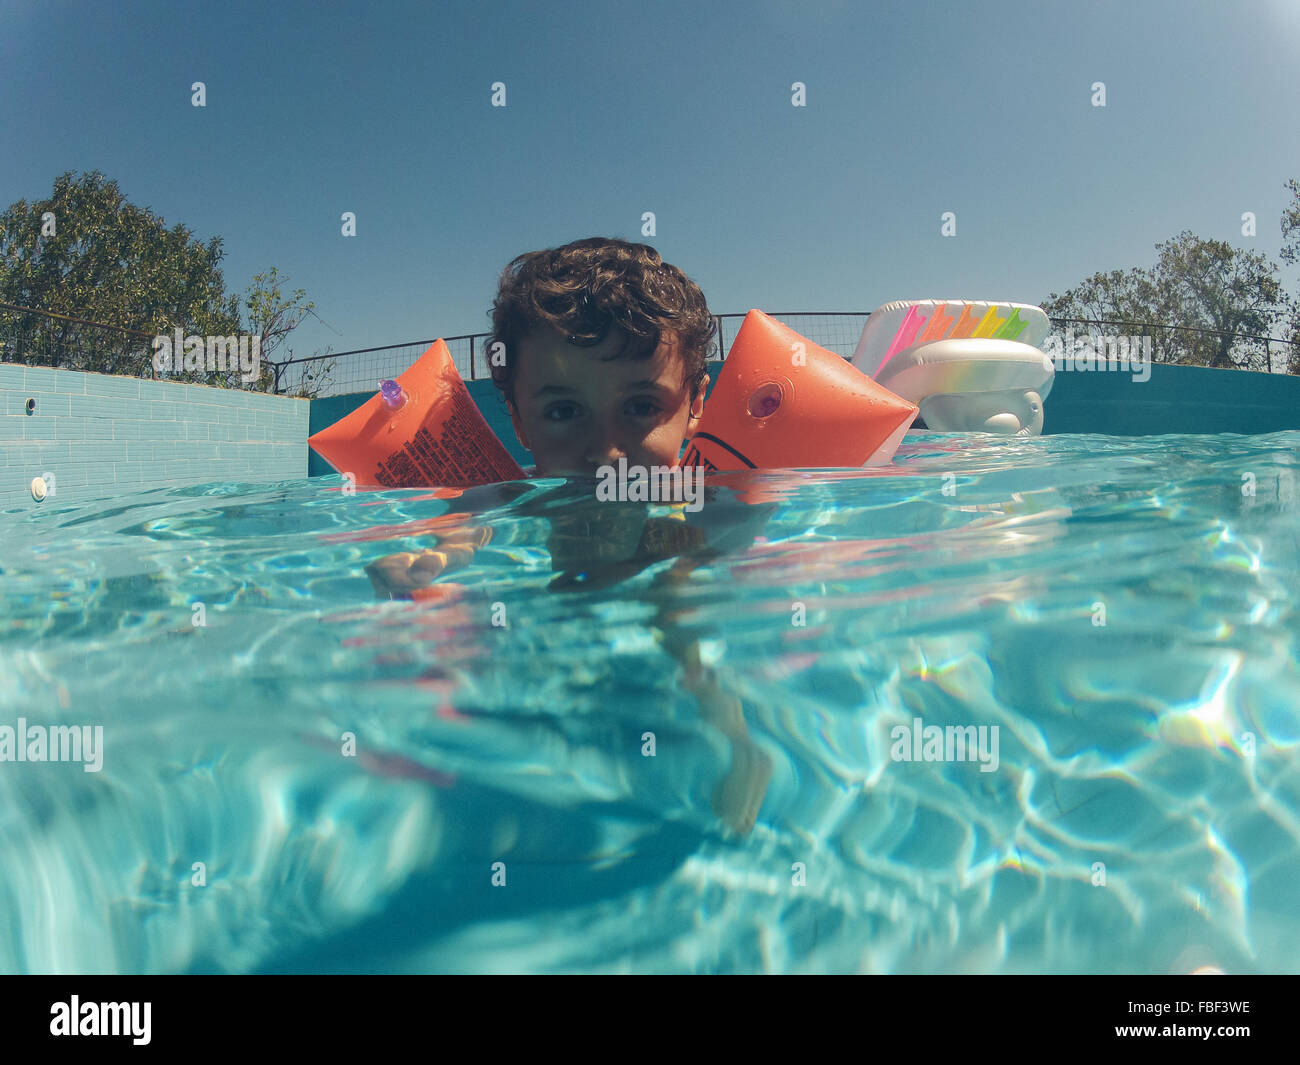 Swimming Pool Wings : Portrait of boy swimming in pool with water wings stock